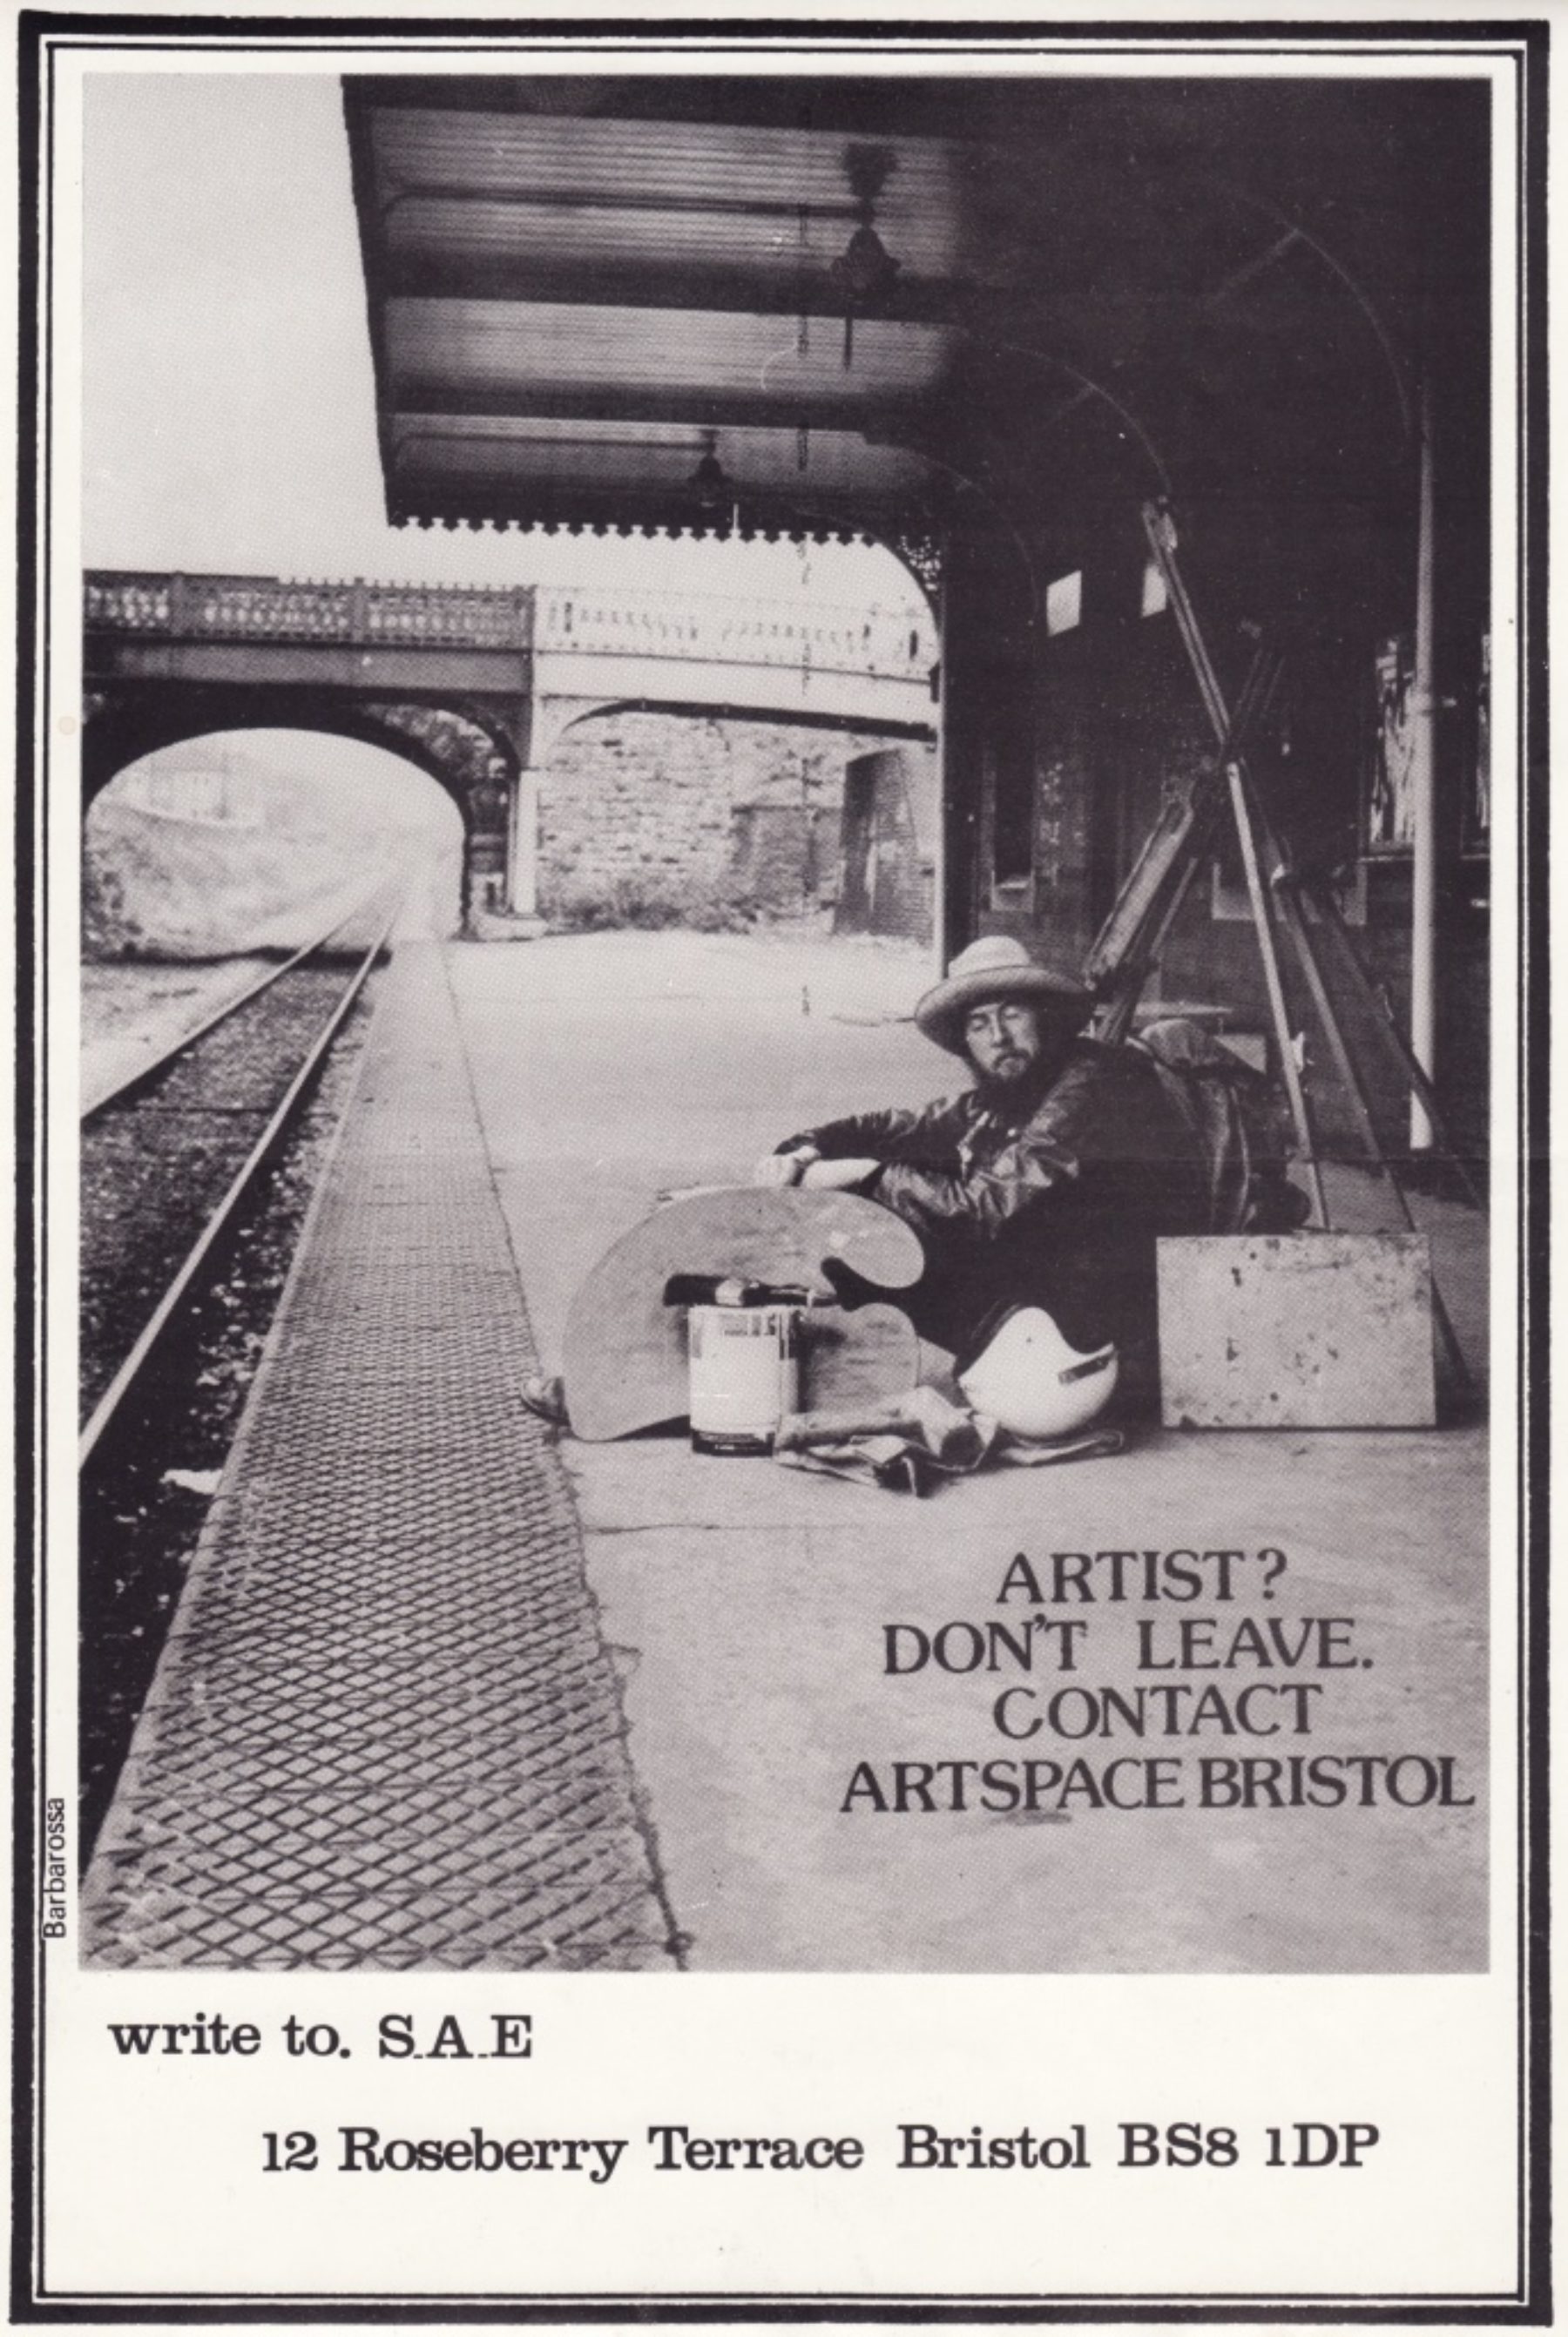 Artspace: Don't Leave poster (1975)